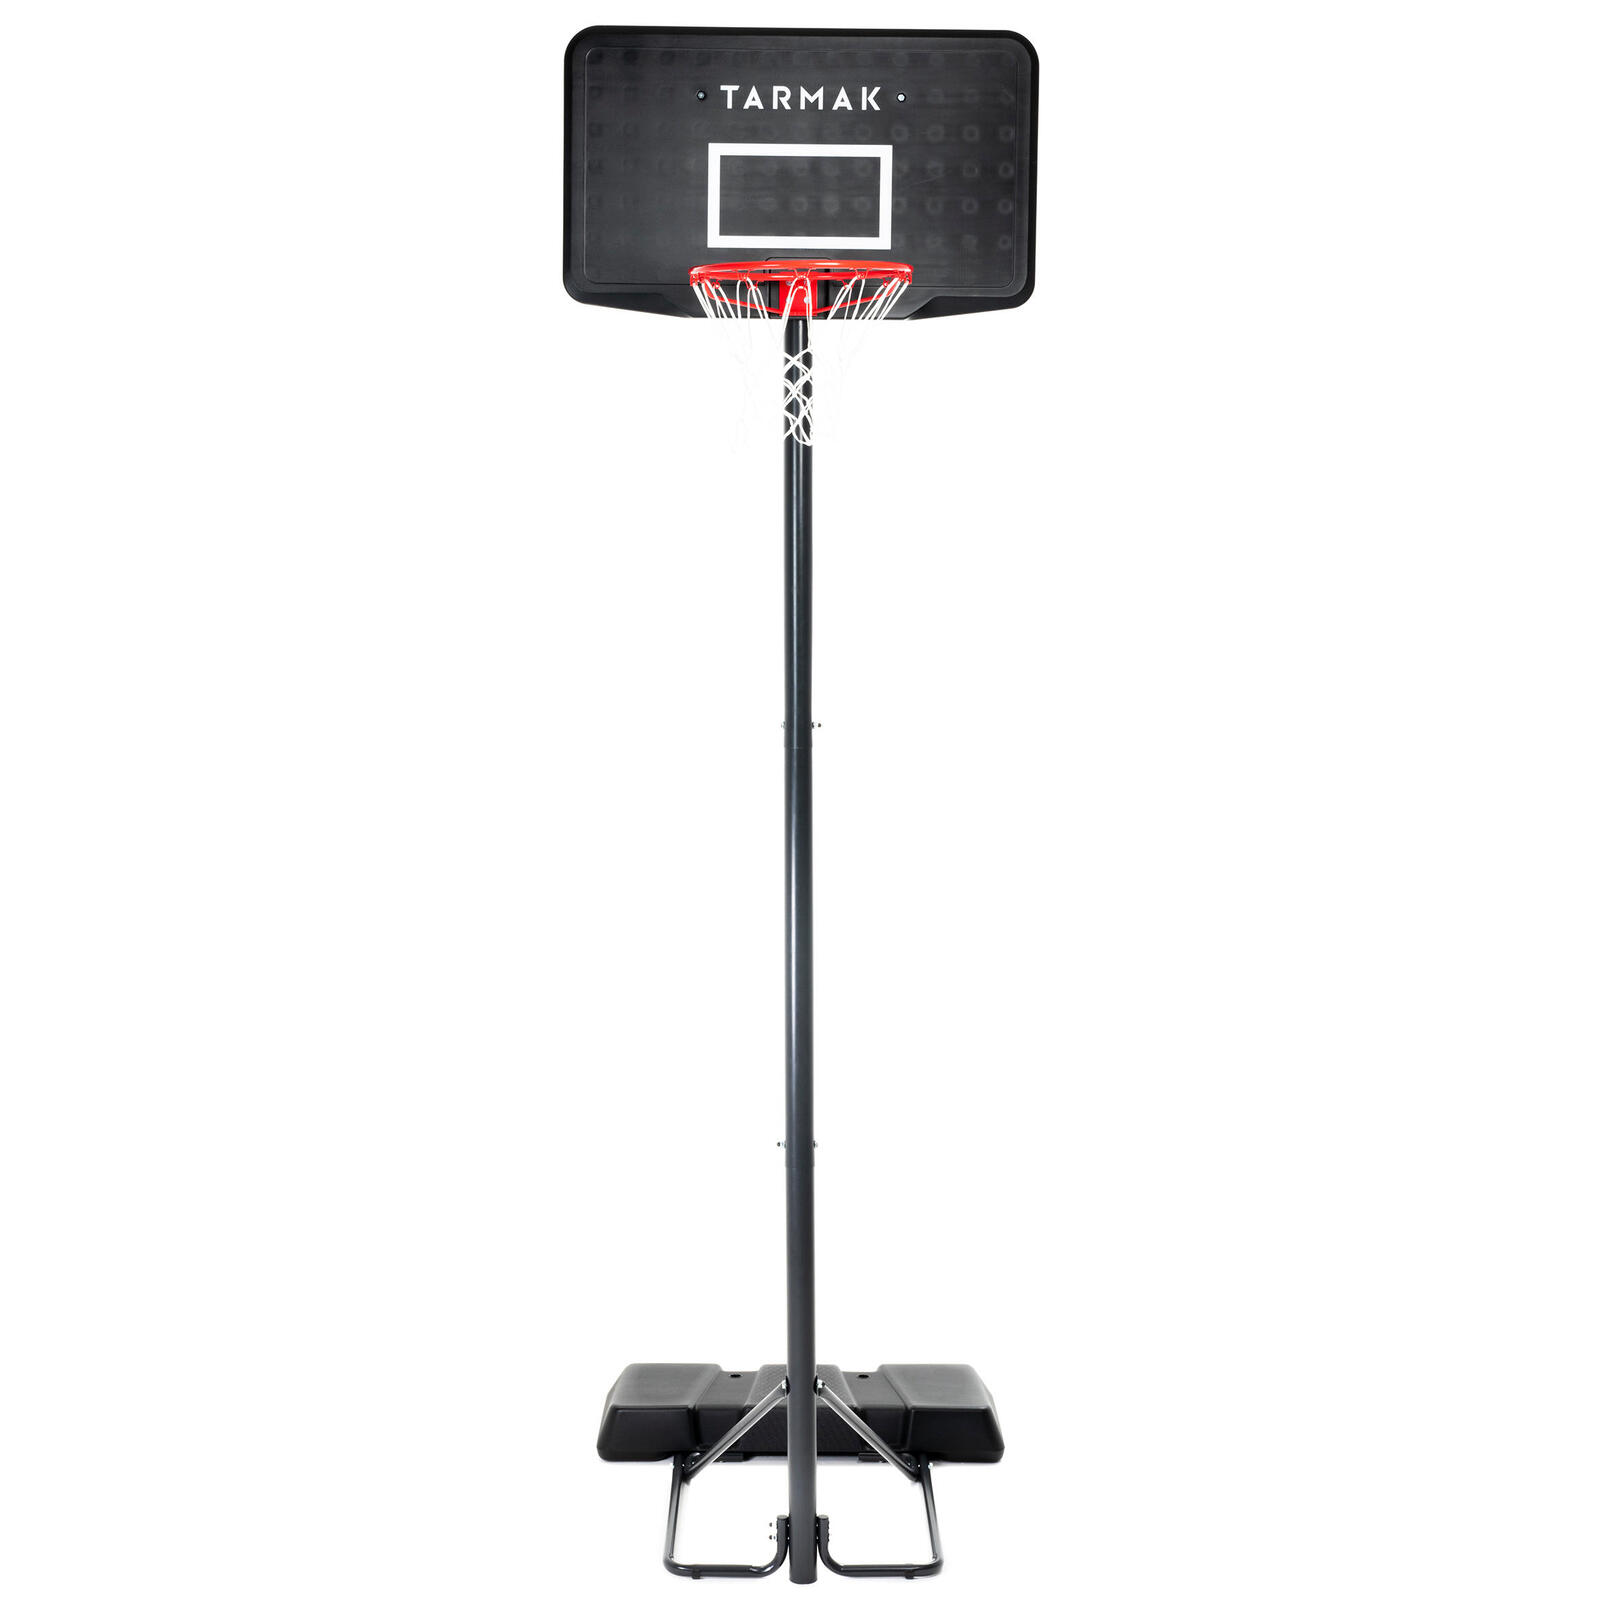 Basketball hoop stand black adjusts from 2.2m to 3.05m